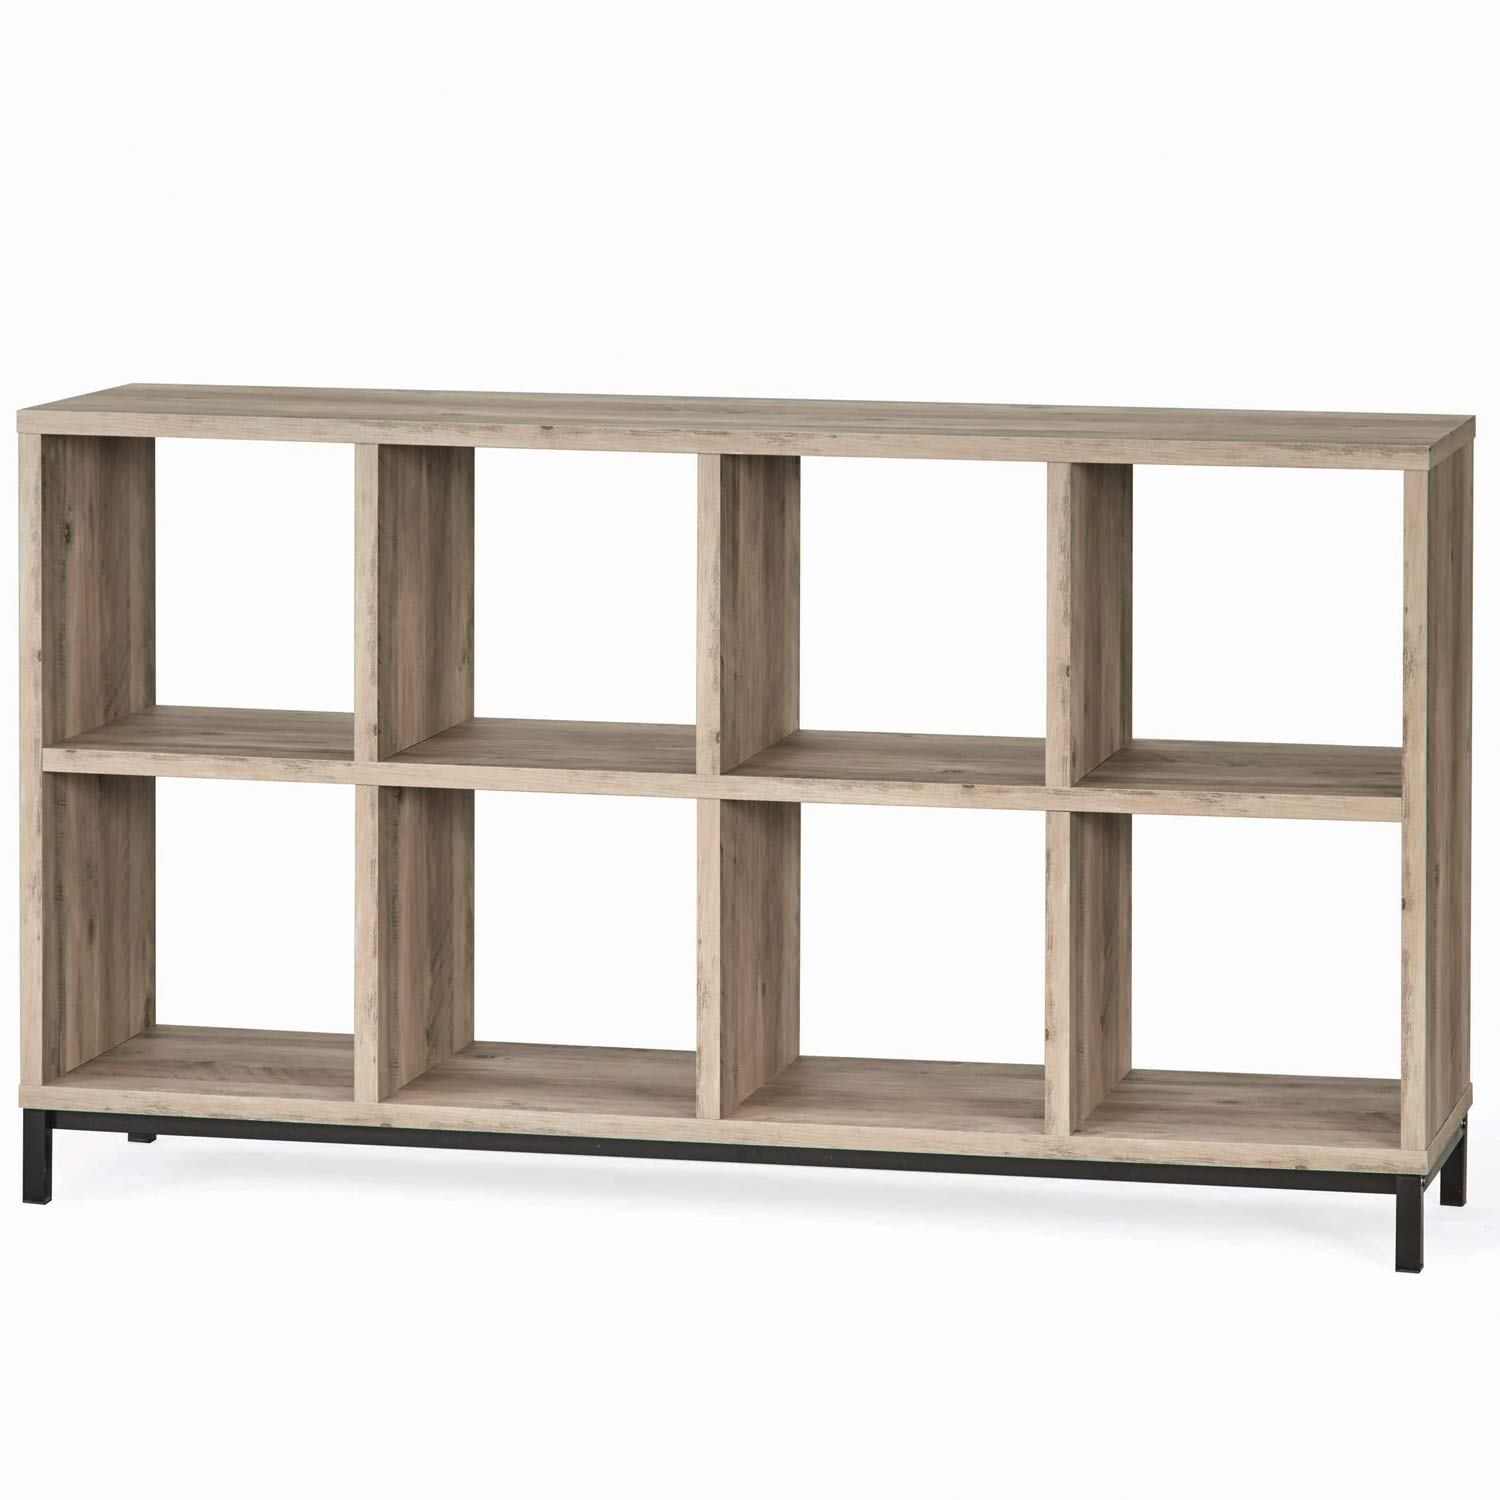 Better Homes and Gardens.. Cube Organizer with Metal Base (8 Cube, Rustic Gray)